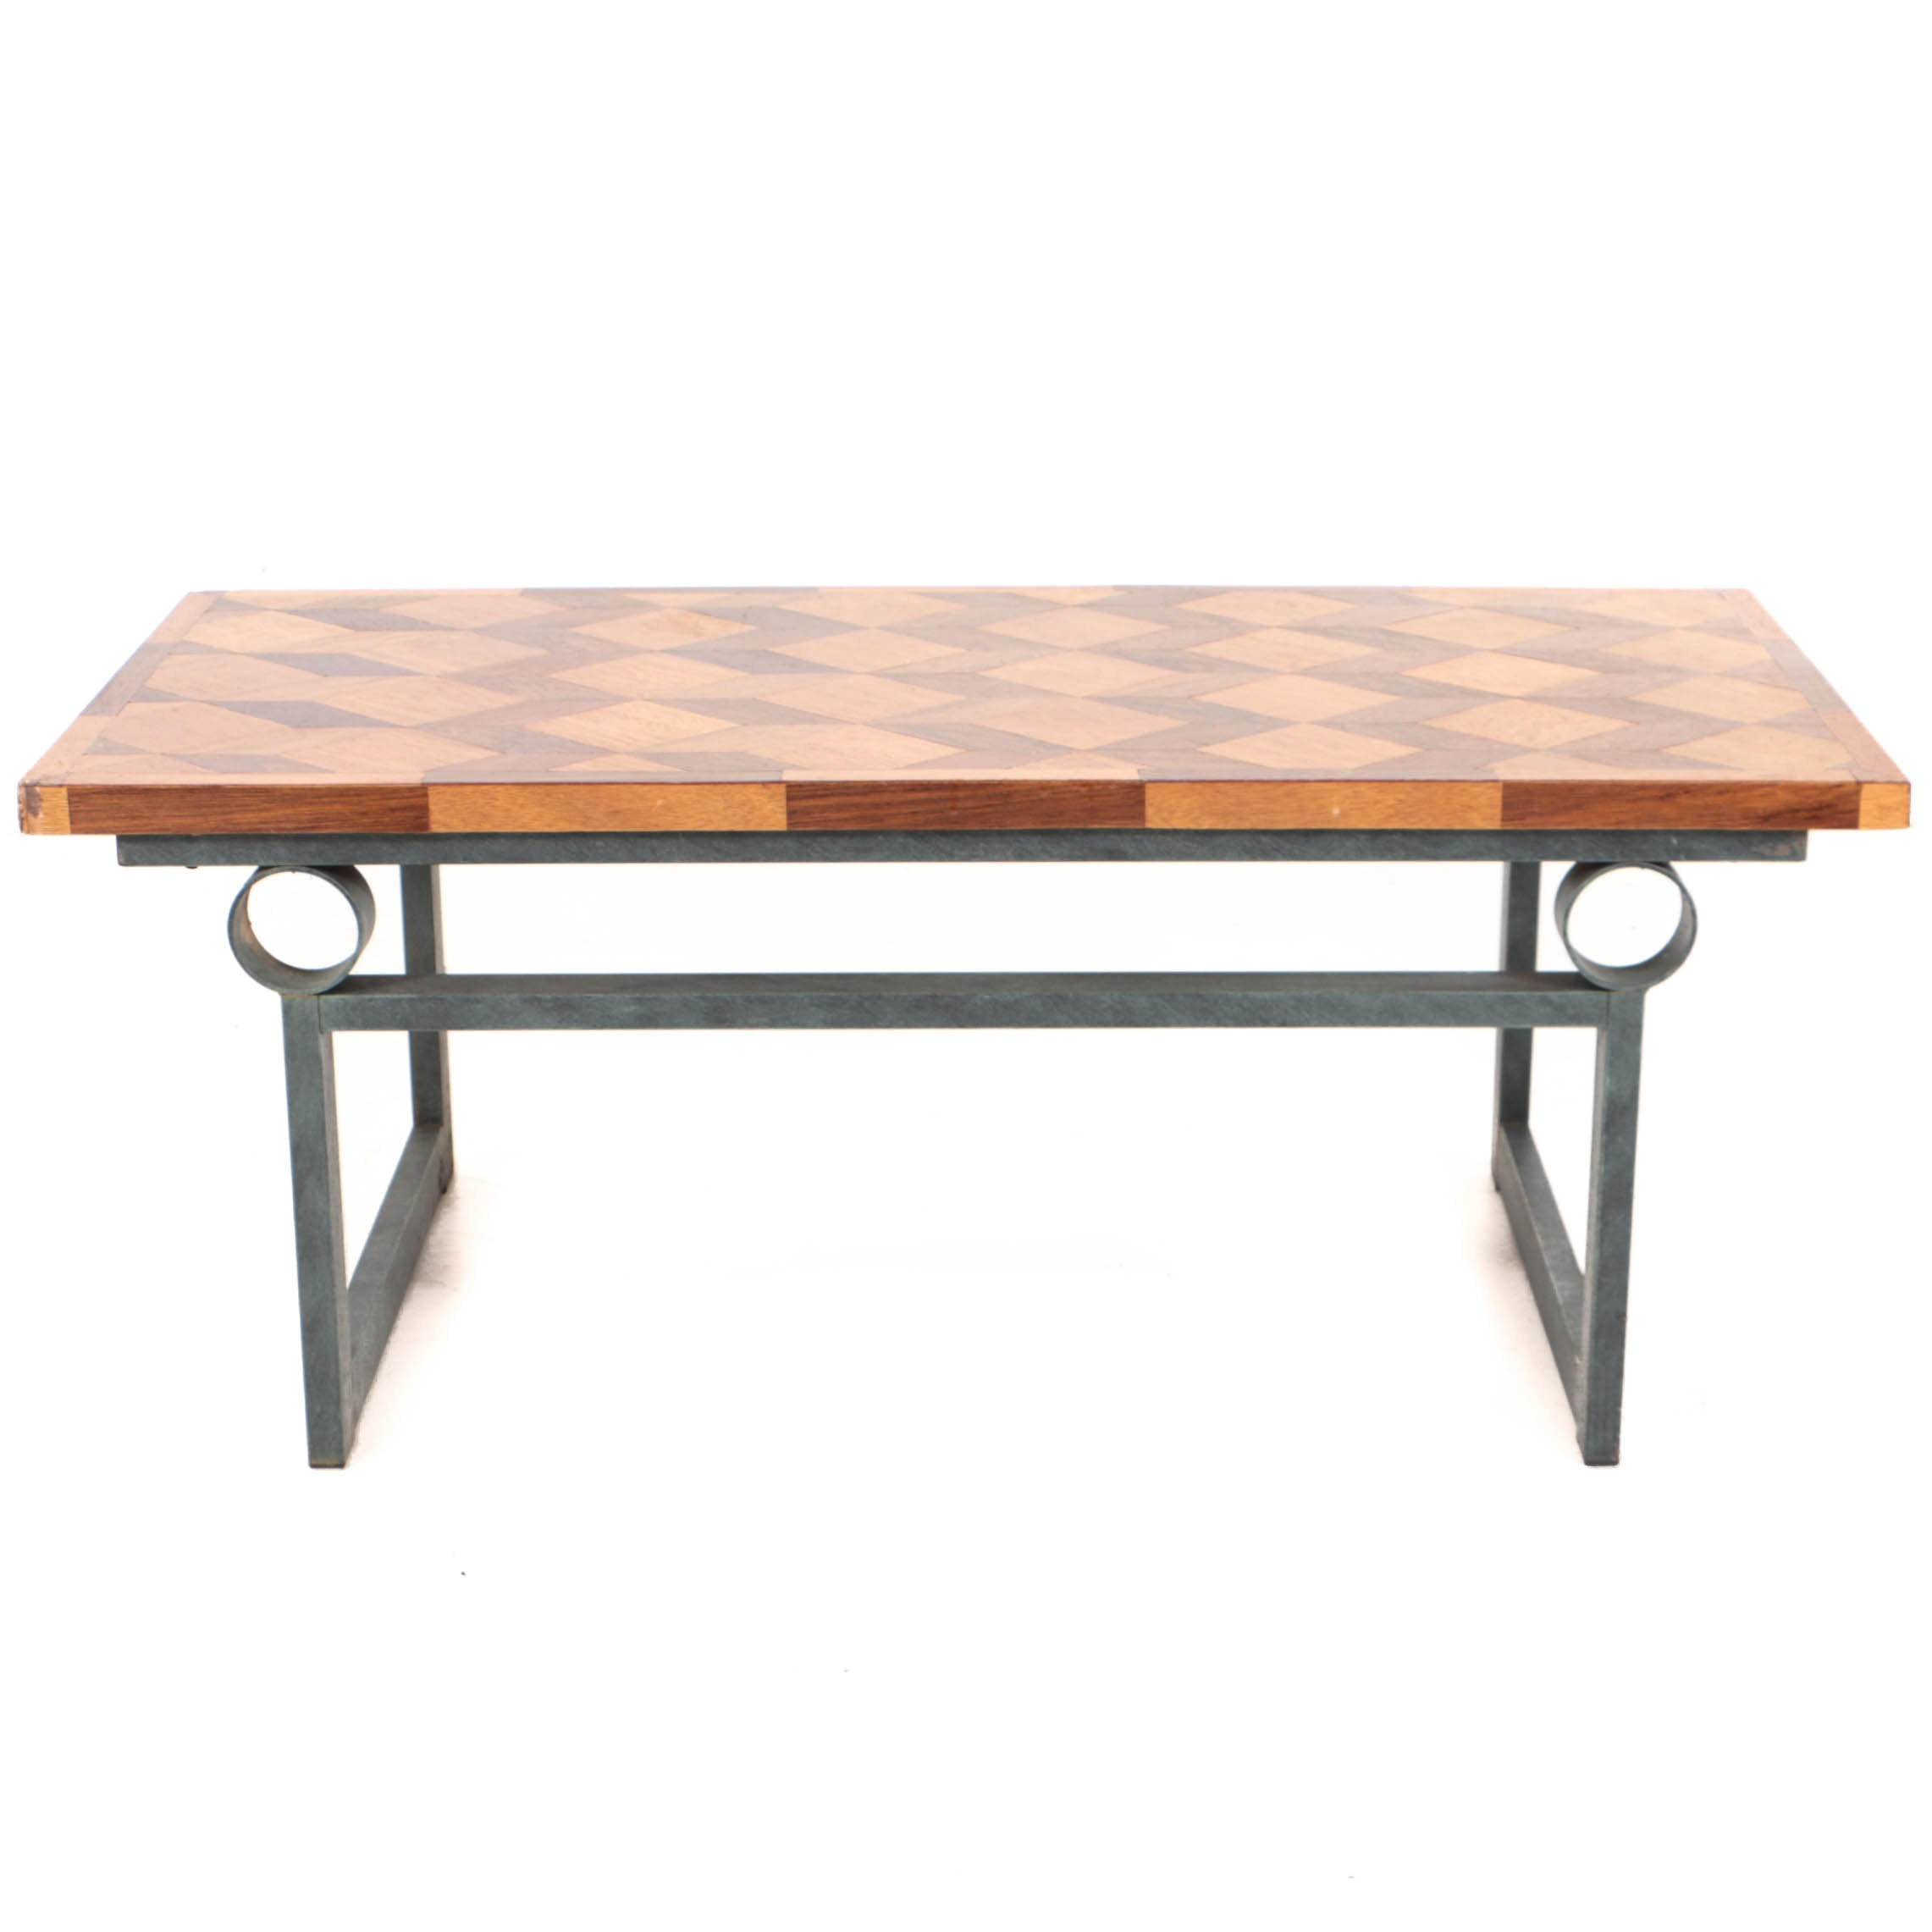 Vintage Parquetry-Top Coffee Table